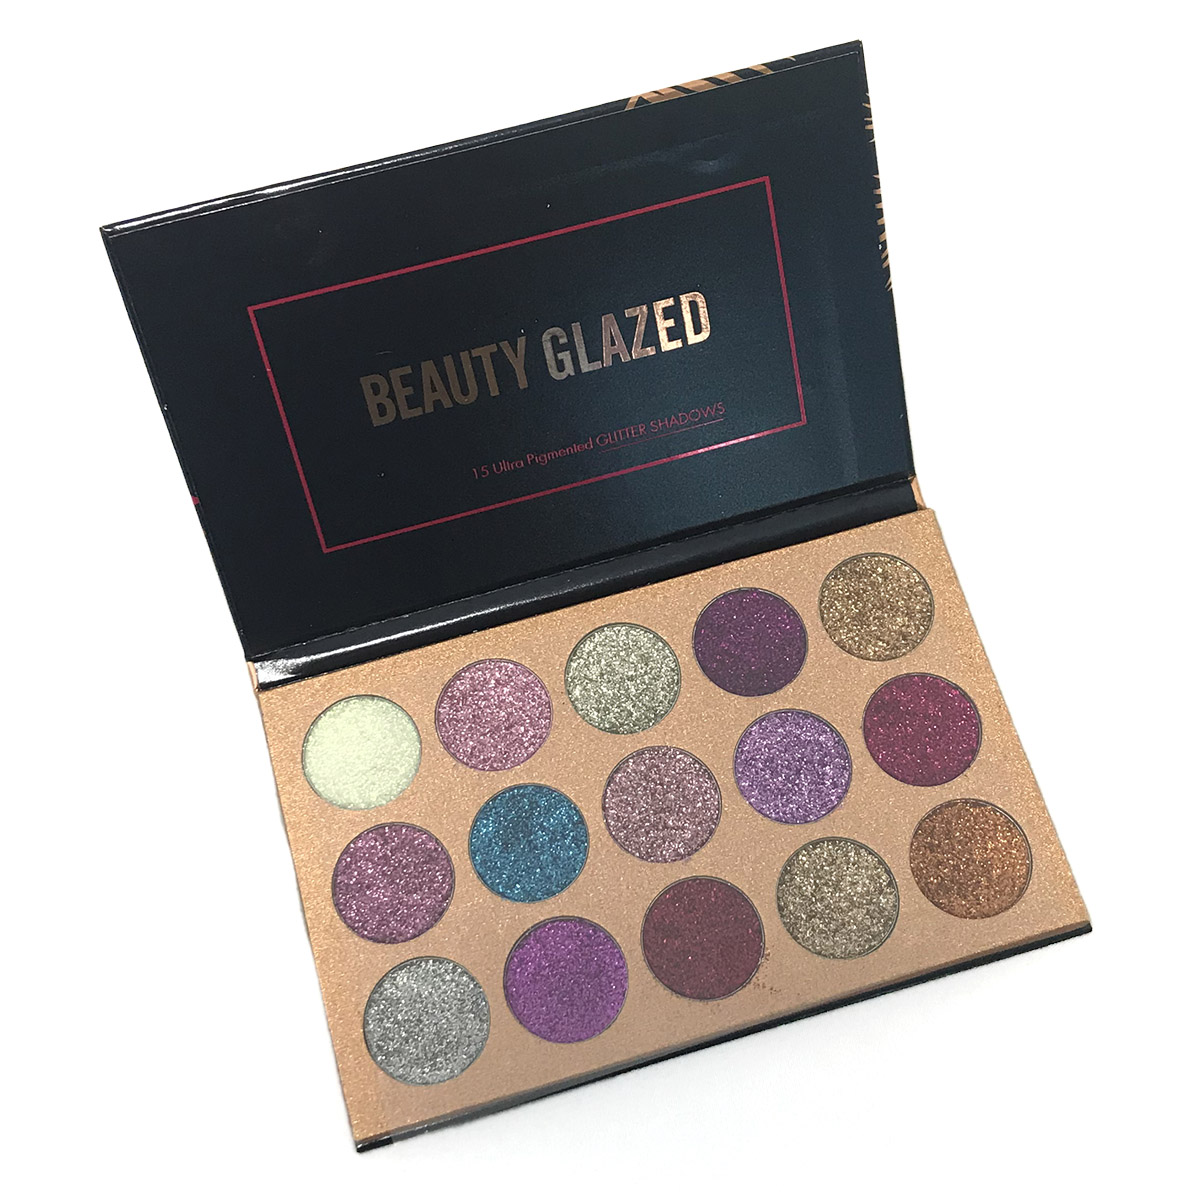 Beauty Glazed 15 Ultra Pressed Glitter Eyeshadow Platte